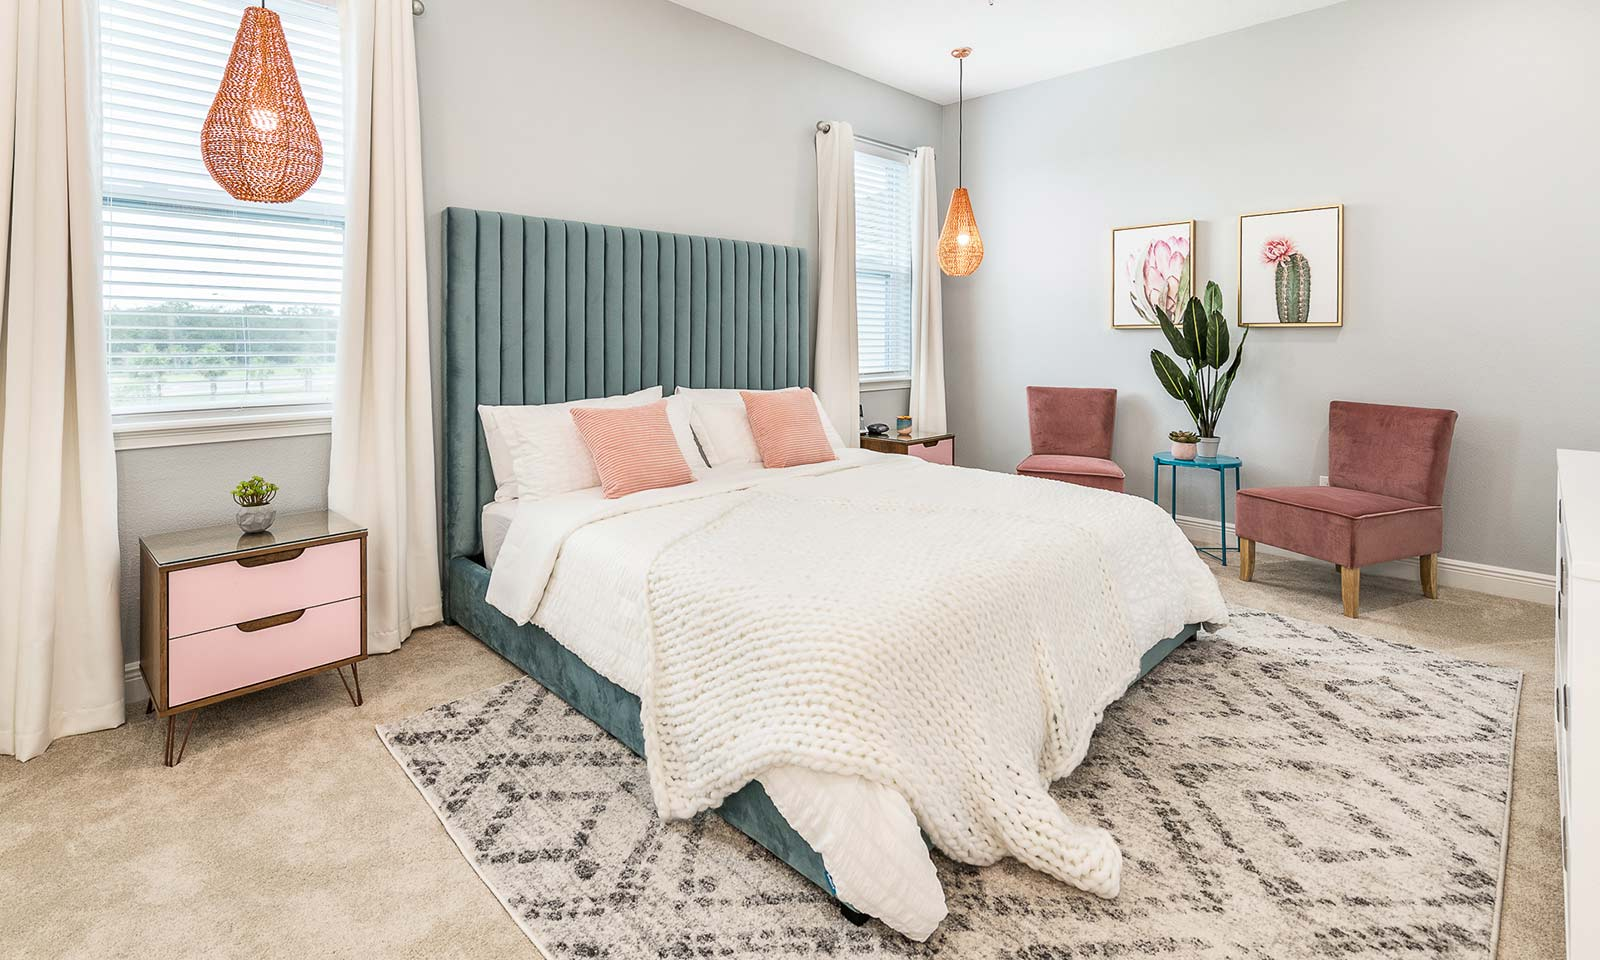 The Chic, Stylish Haven-187751